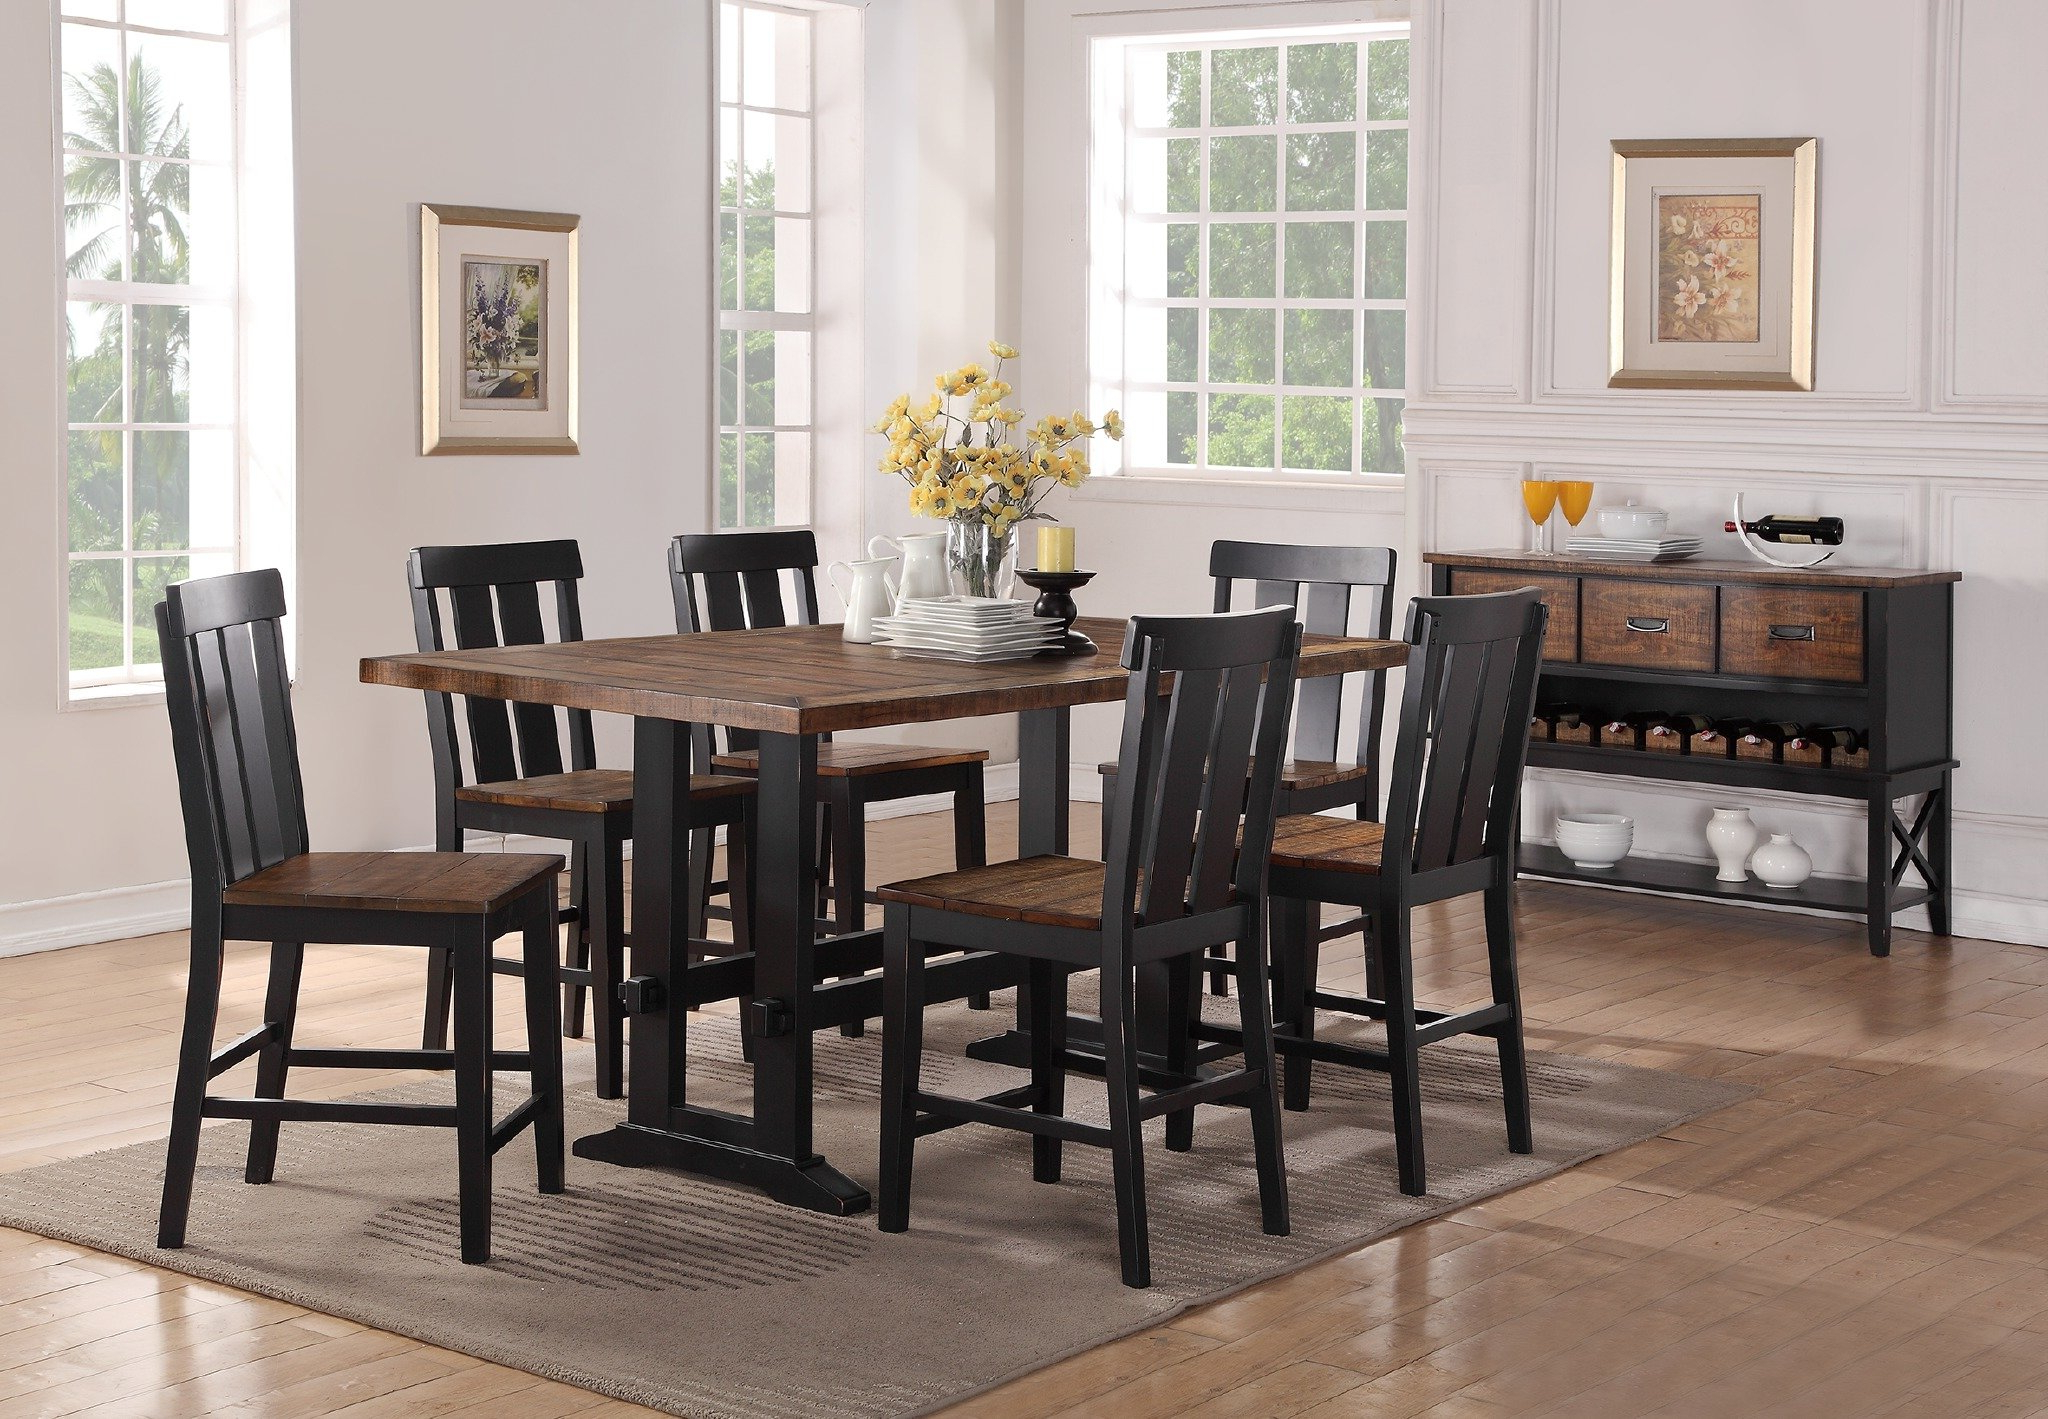 Goodman 5 Piece Solid Wood Dining Sets (Set Of 5) Throughout Well Known Gracie Oaks Goodman 7 Piece Counter Height Dining Set & Reviews (View 3 of 25)